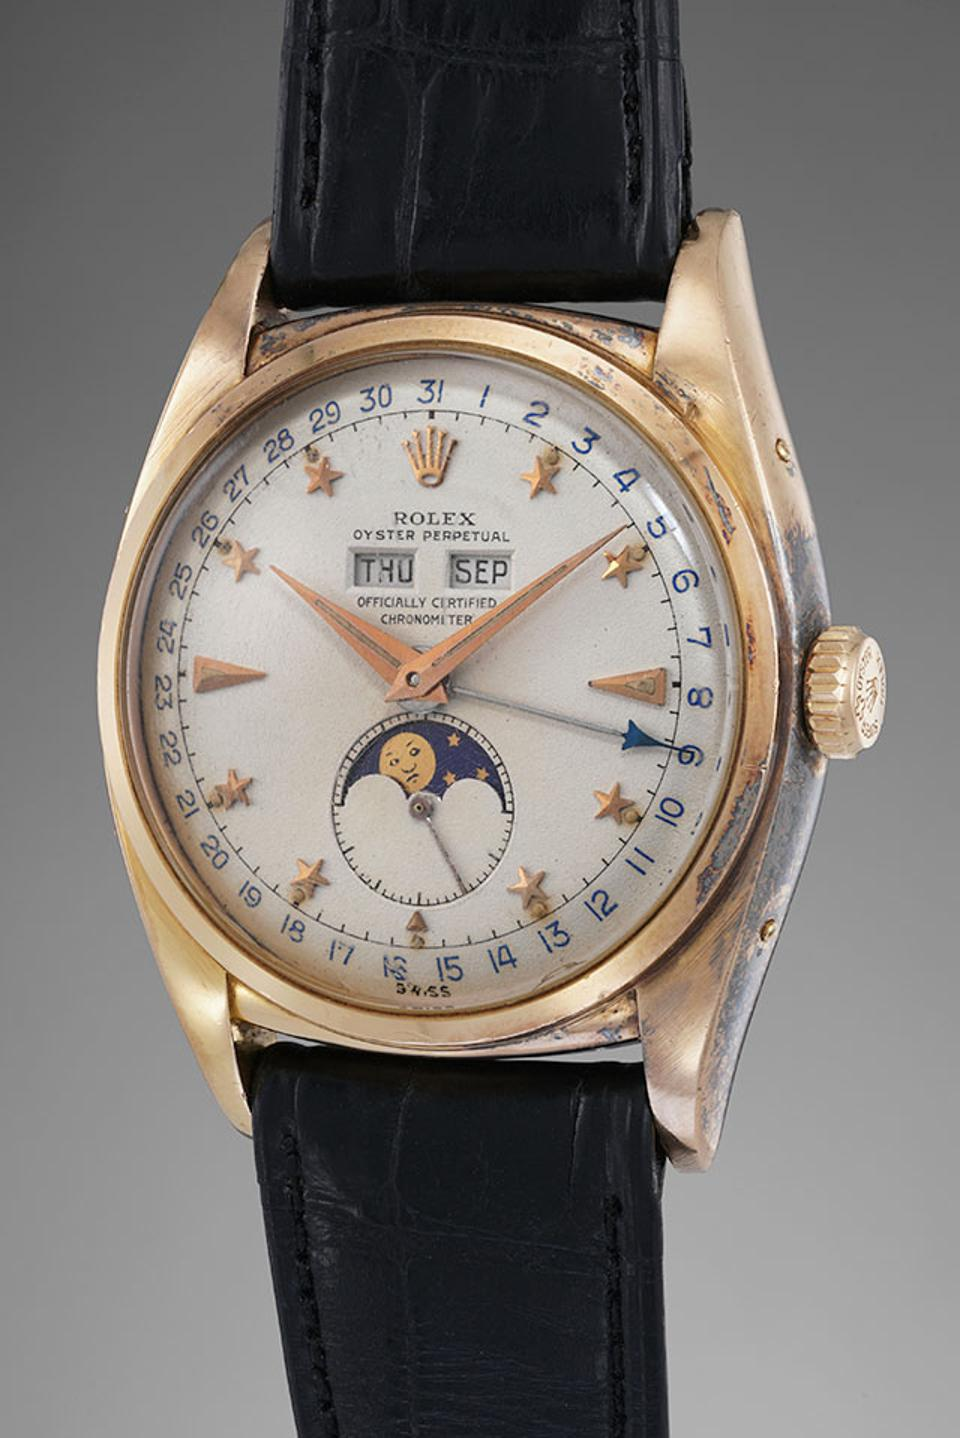 This Rolex Ref. 6062 ″Stelline is being sold by Phillips for CHF 1-2-million.